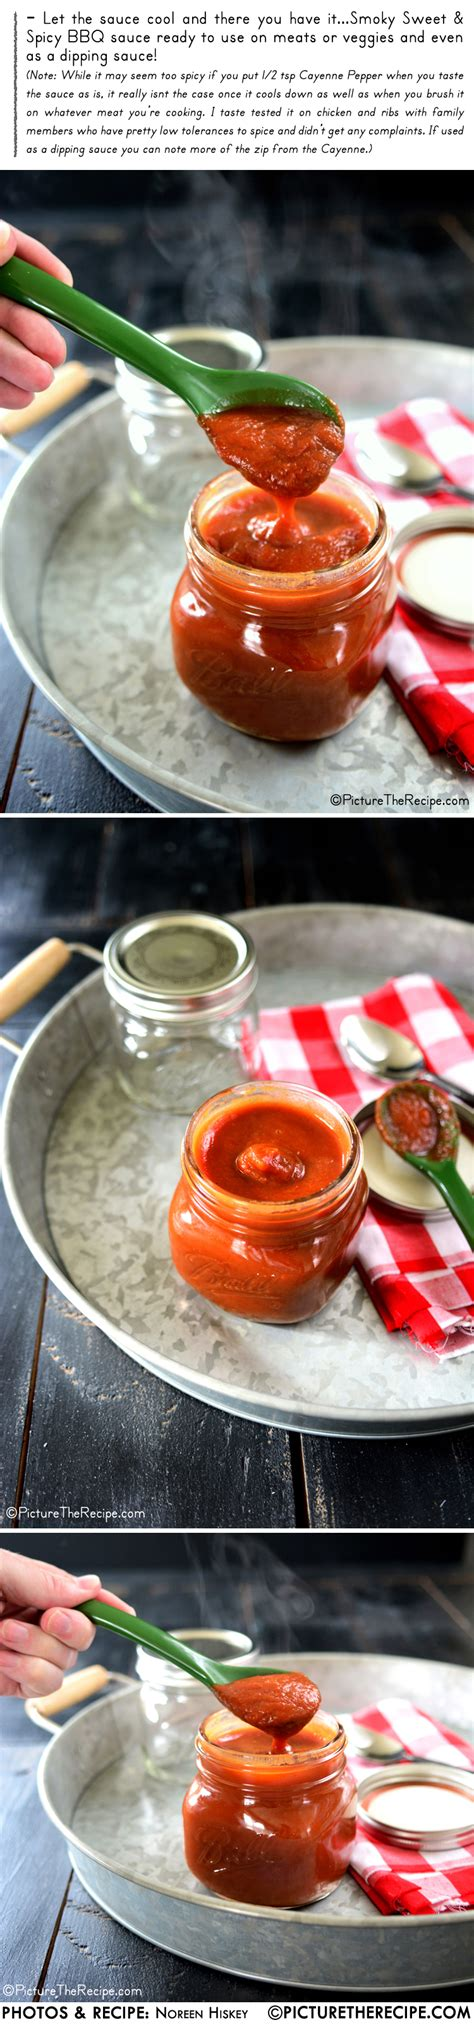 the sauce is the 30 watering barbecue sauce recipes books sweet spicy bbq sauce sugar free whole30 paleo